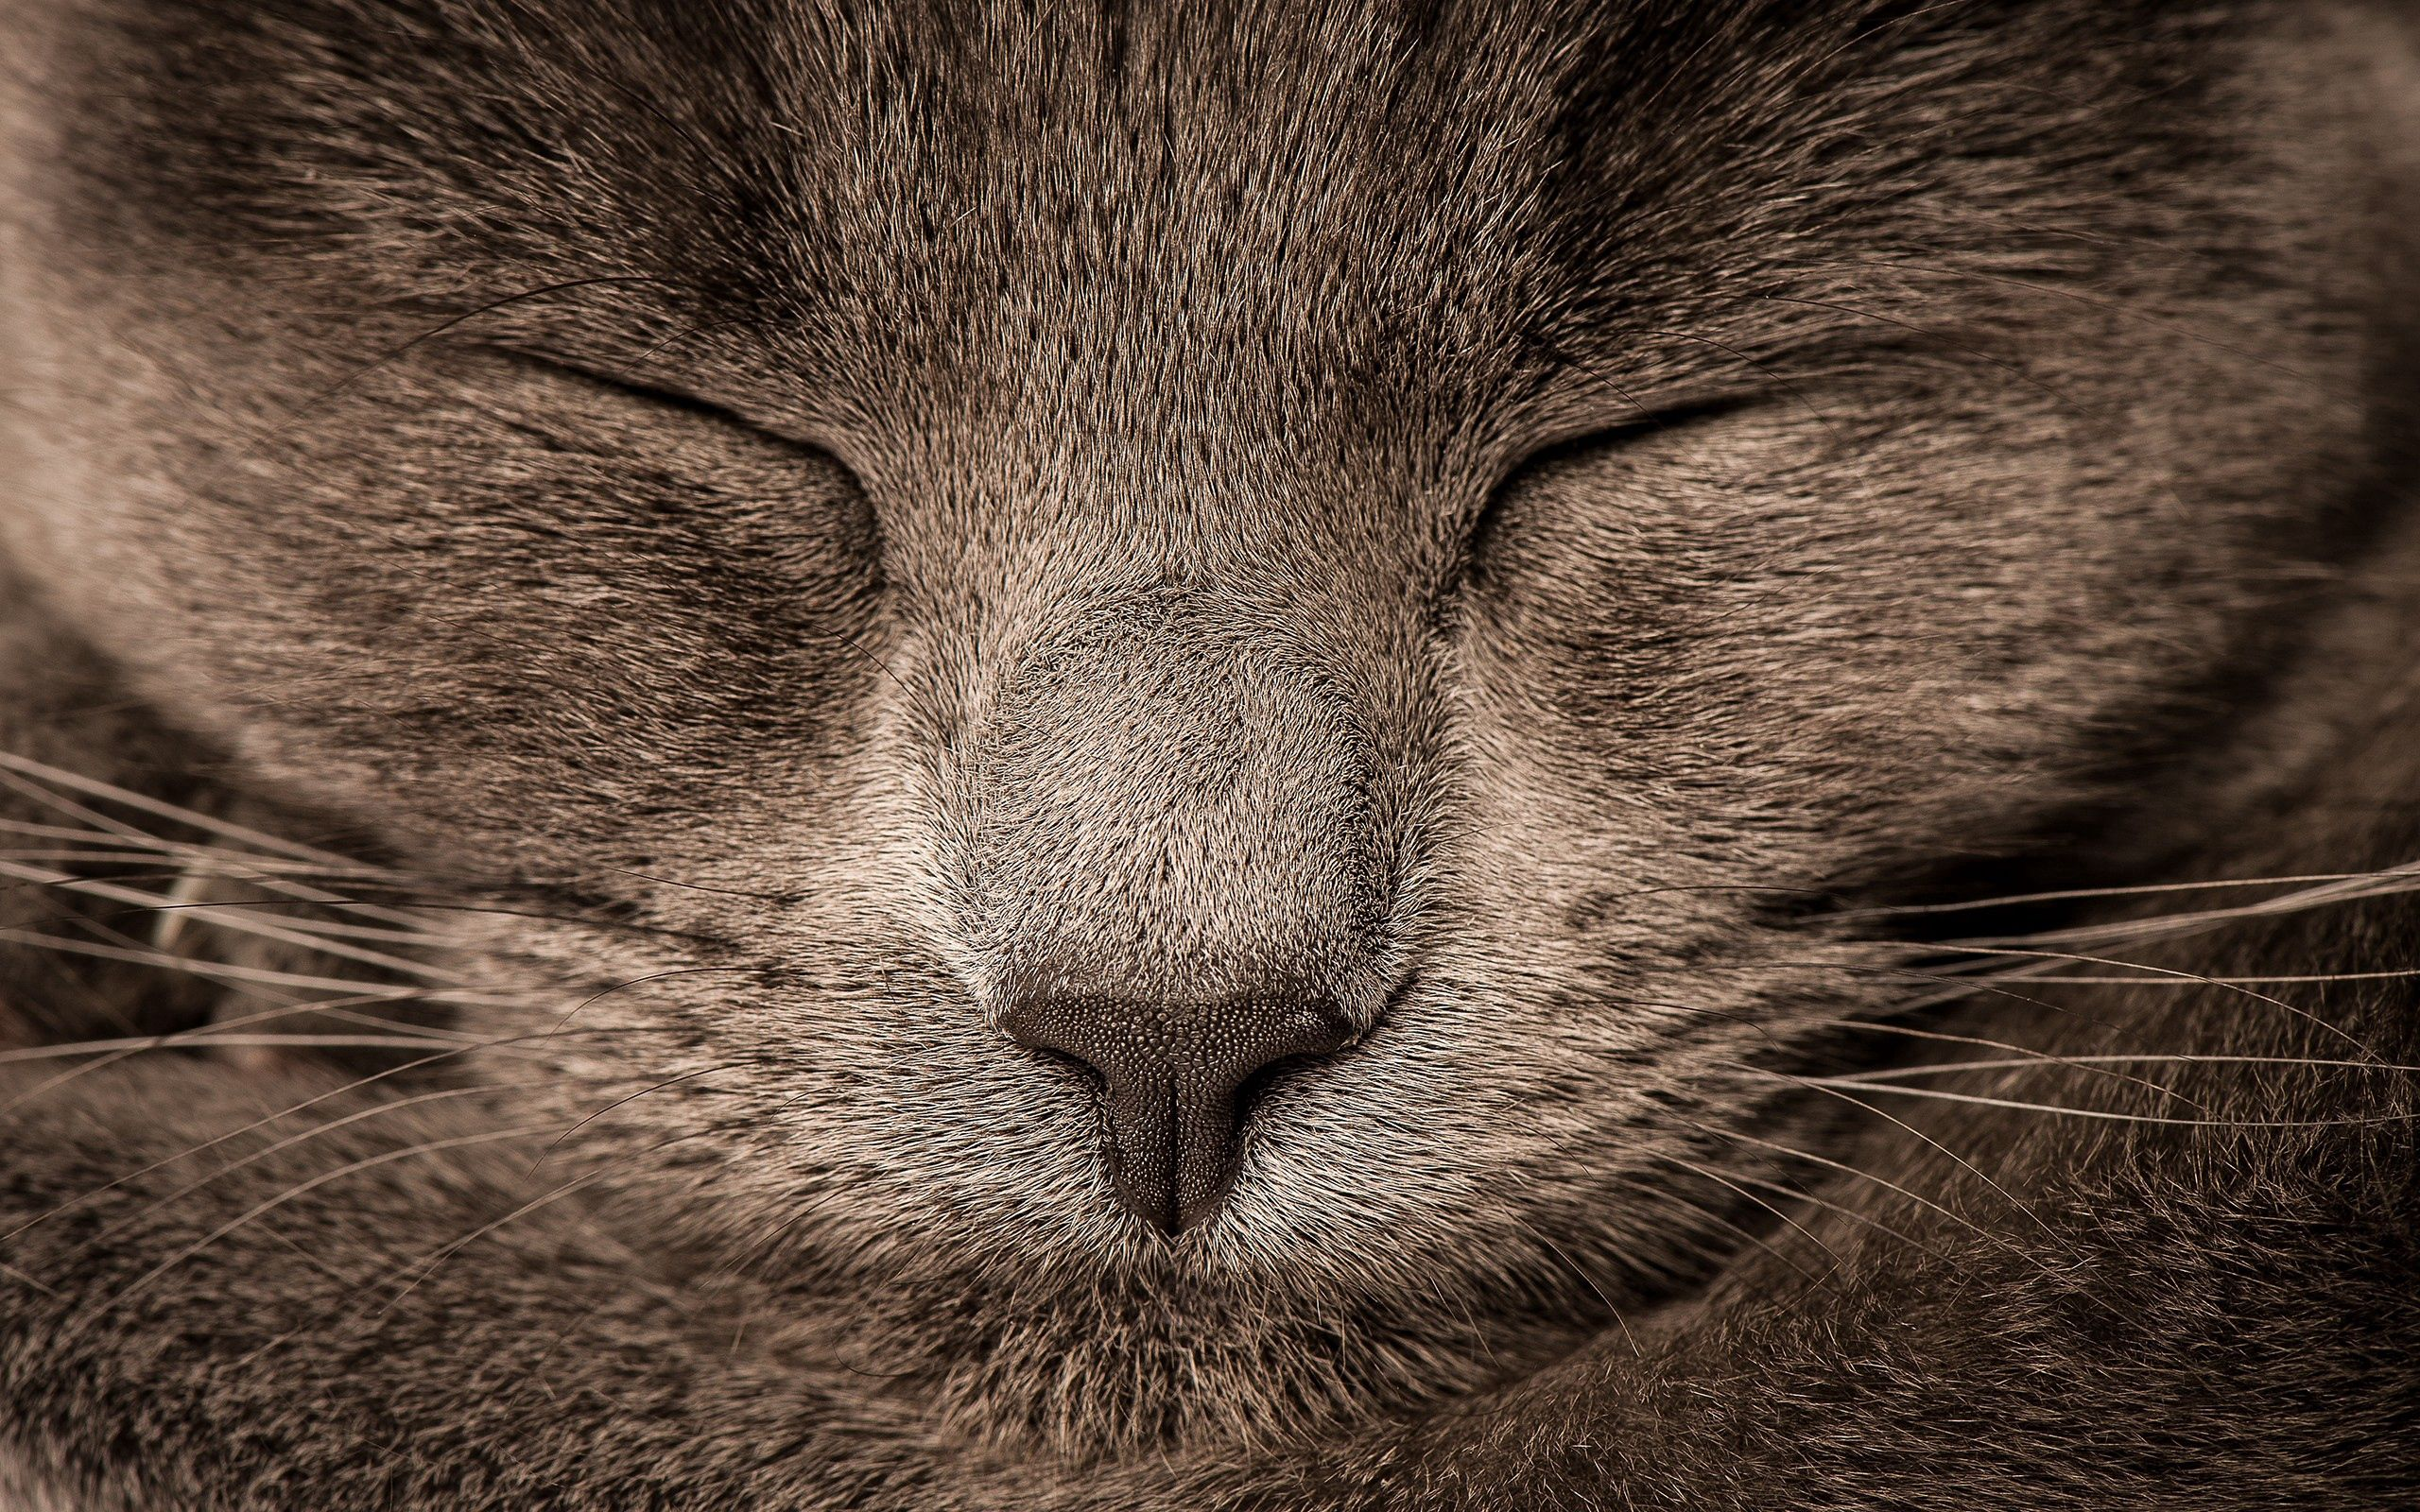 112088 download wallpaper Animals, Cat, Sight, Opinion, Eyes, Grey screensavers and pictures for free